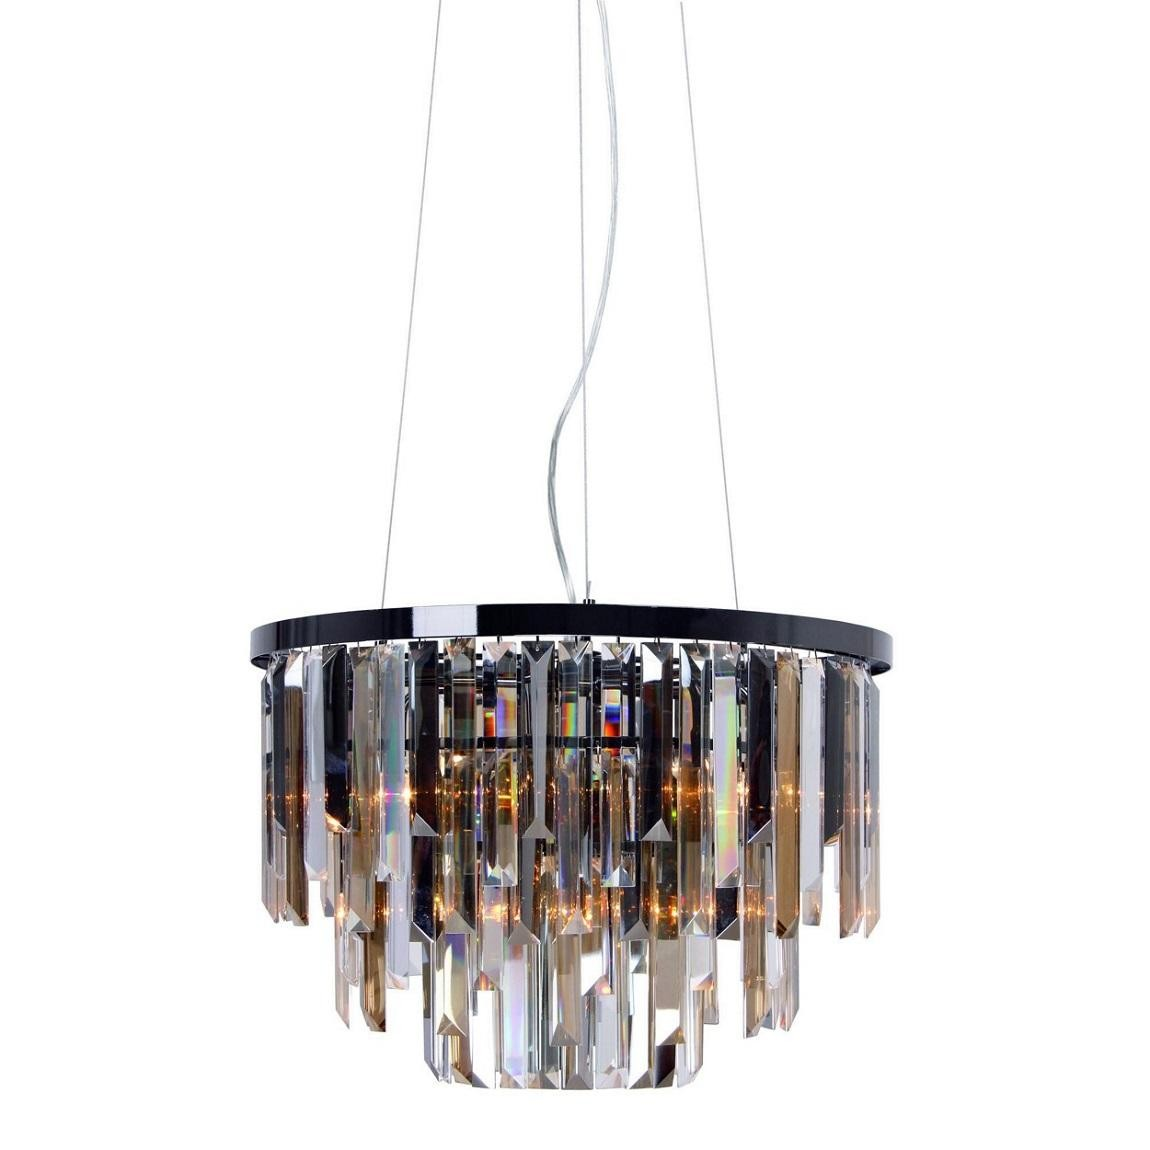 Debenhams-Camila-pendant-light.jpg